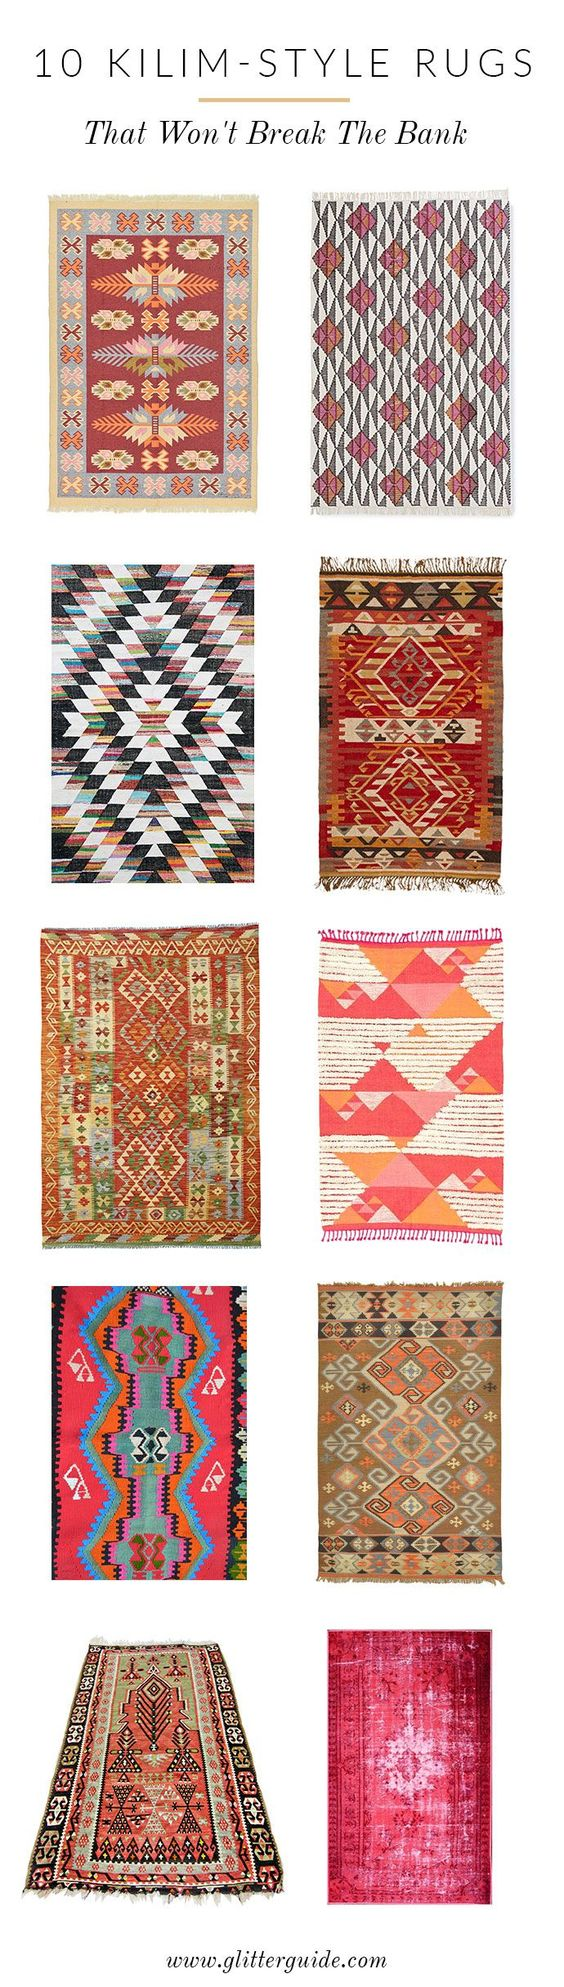 Loving kilim-style rugs these days. Here is where to save on this splurge-worthy trend!